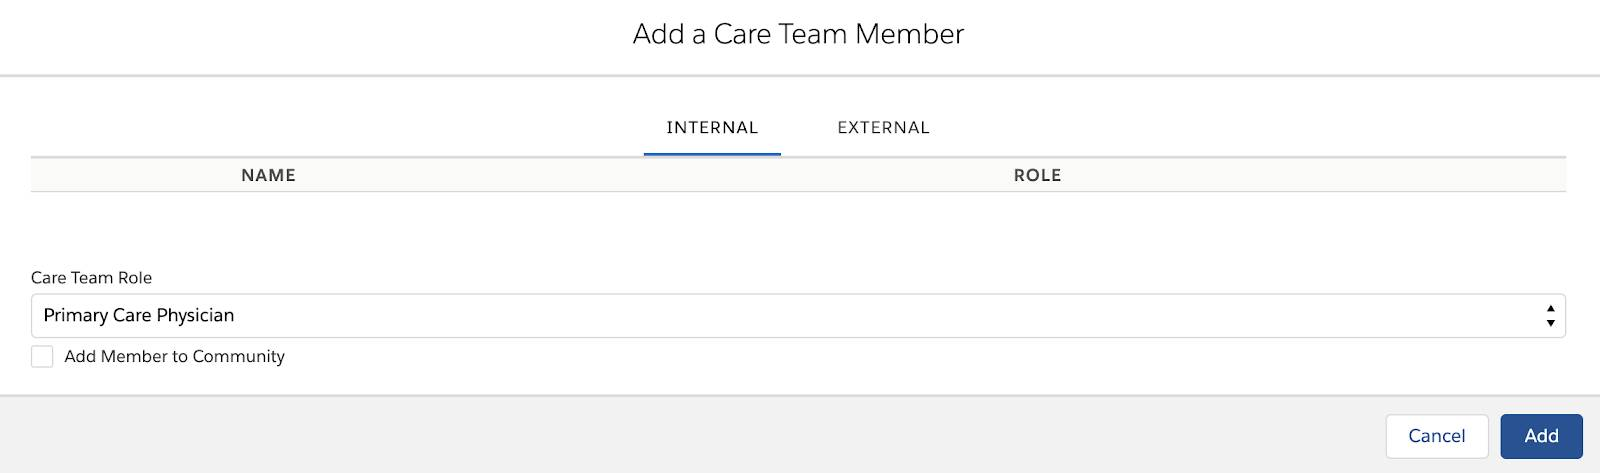 Alt text: The Add a Care Team Member screen, showing the Internal tab with a Care Team Role list and an Add Member to Community option.